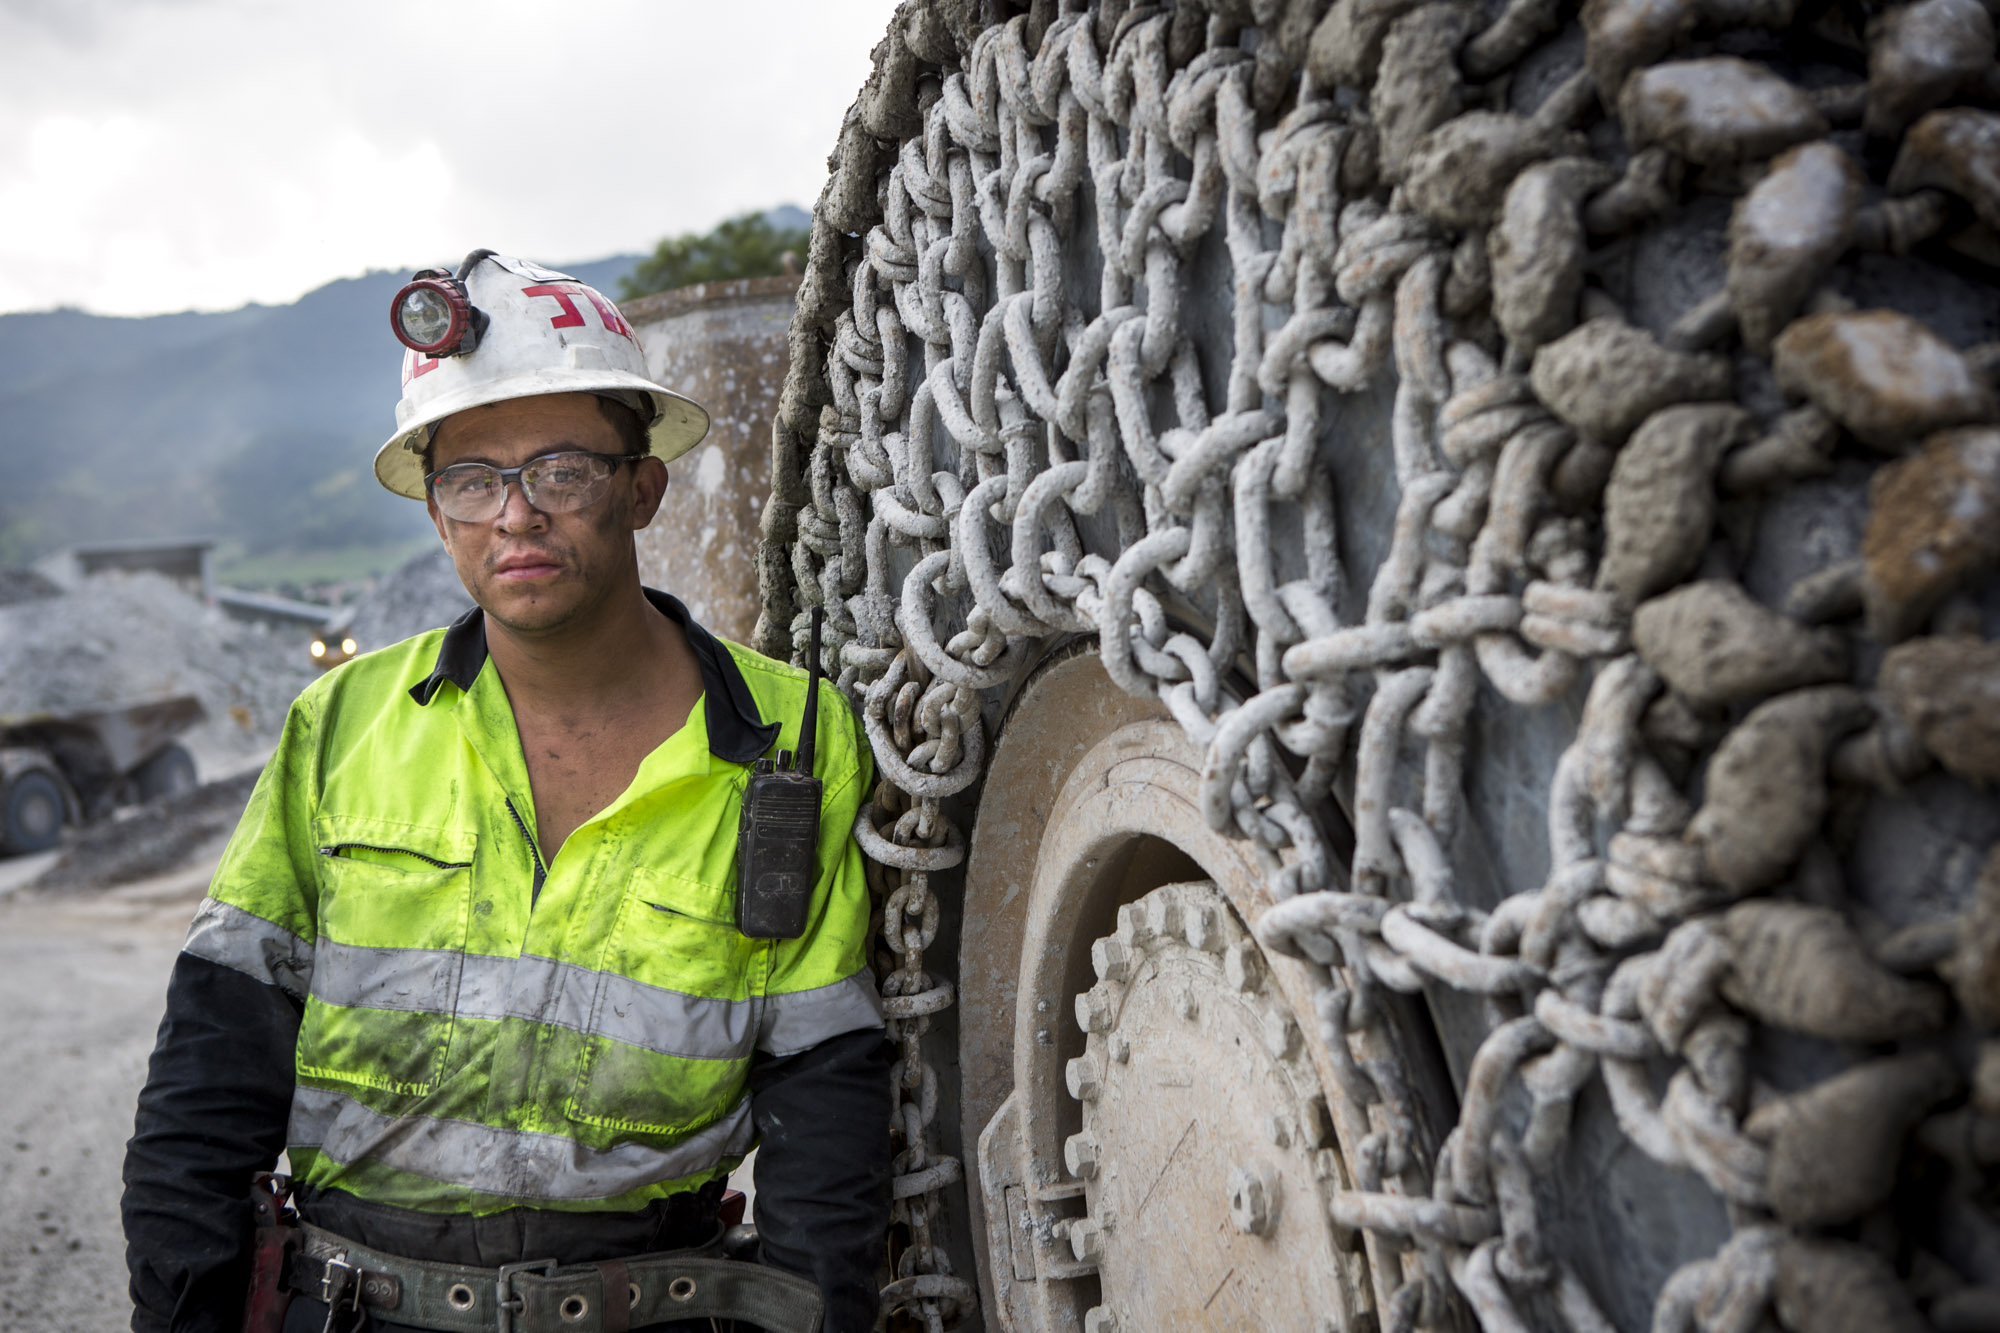 Miner stands near a massive mining tire